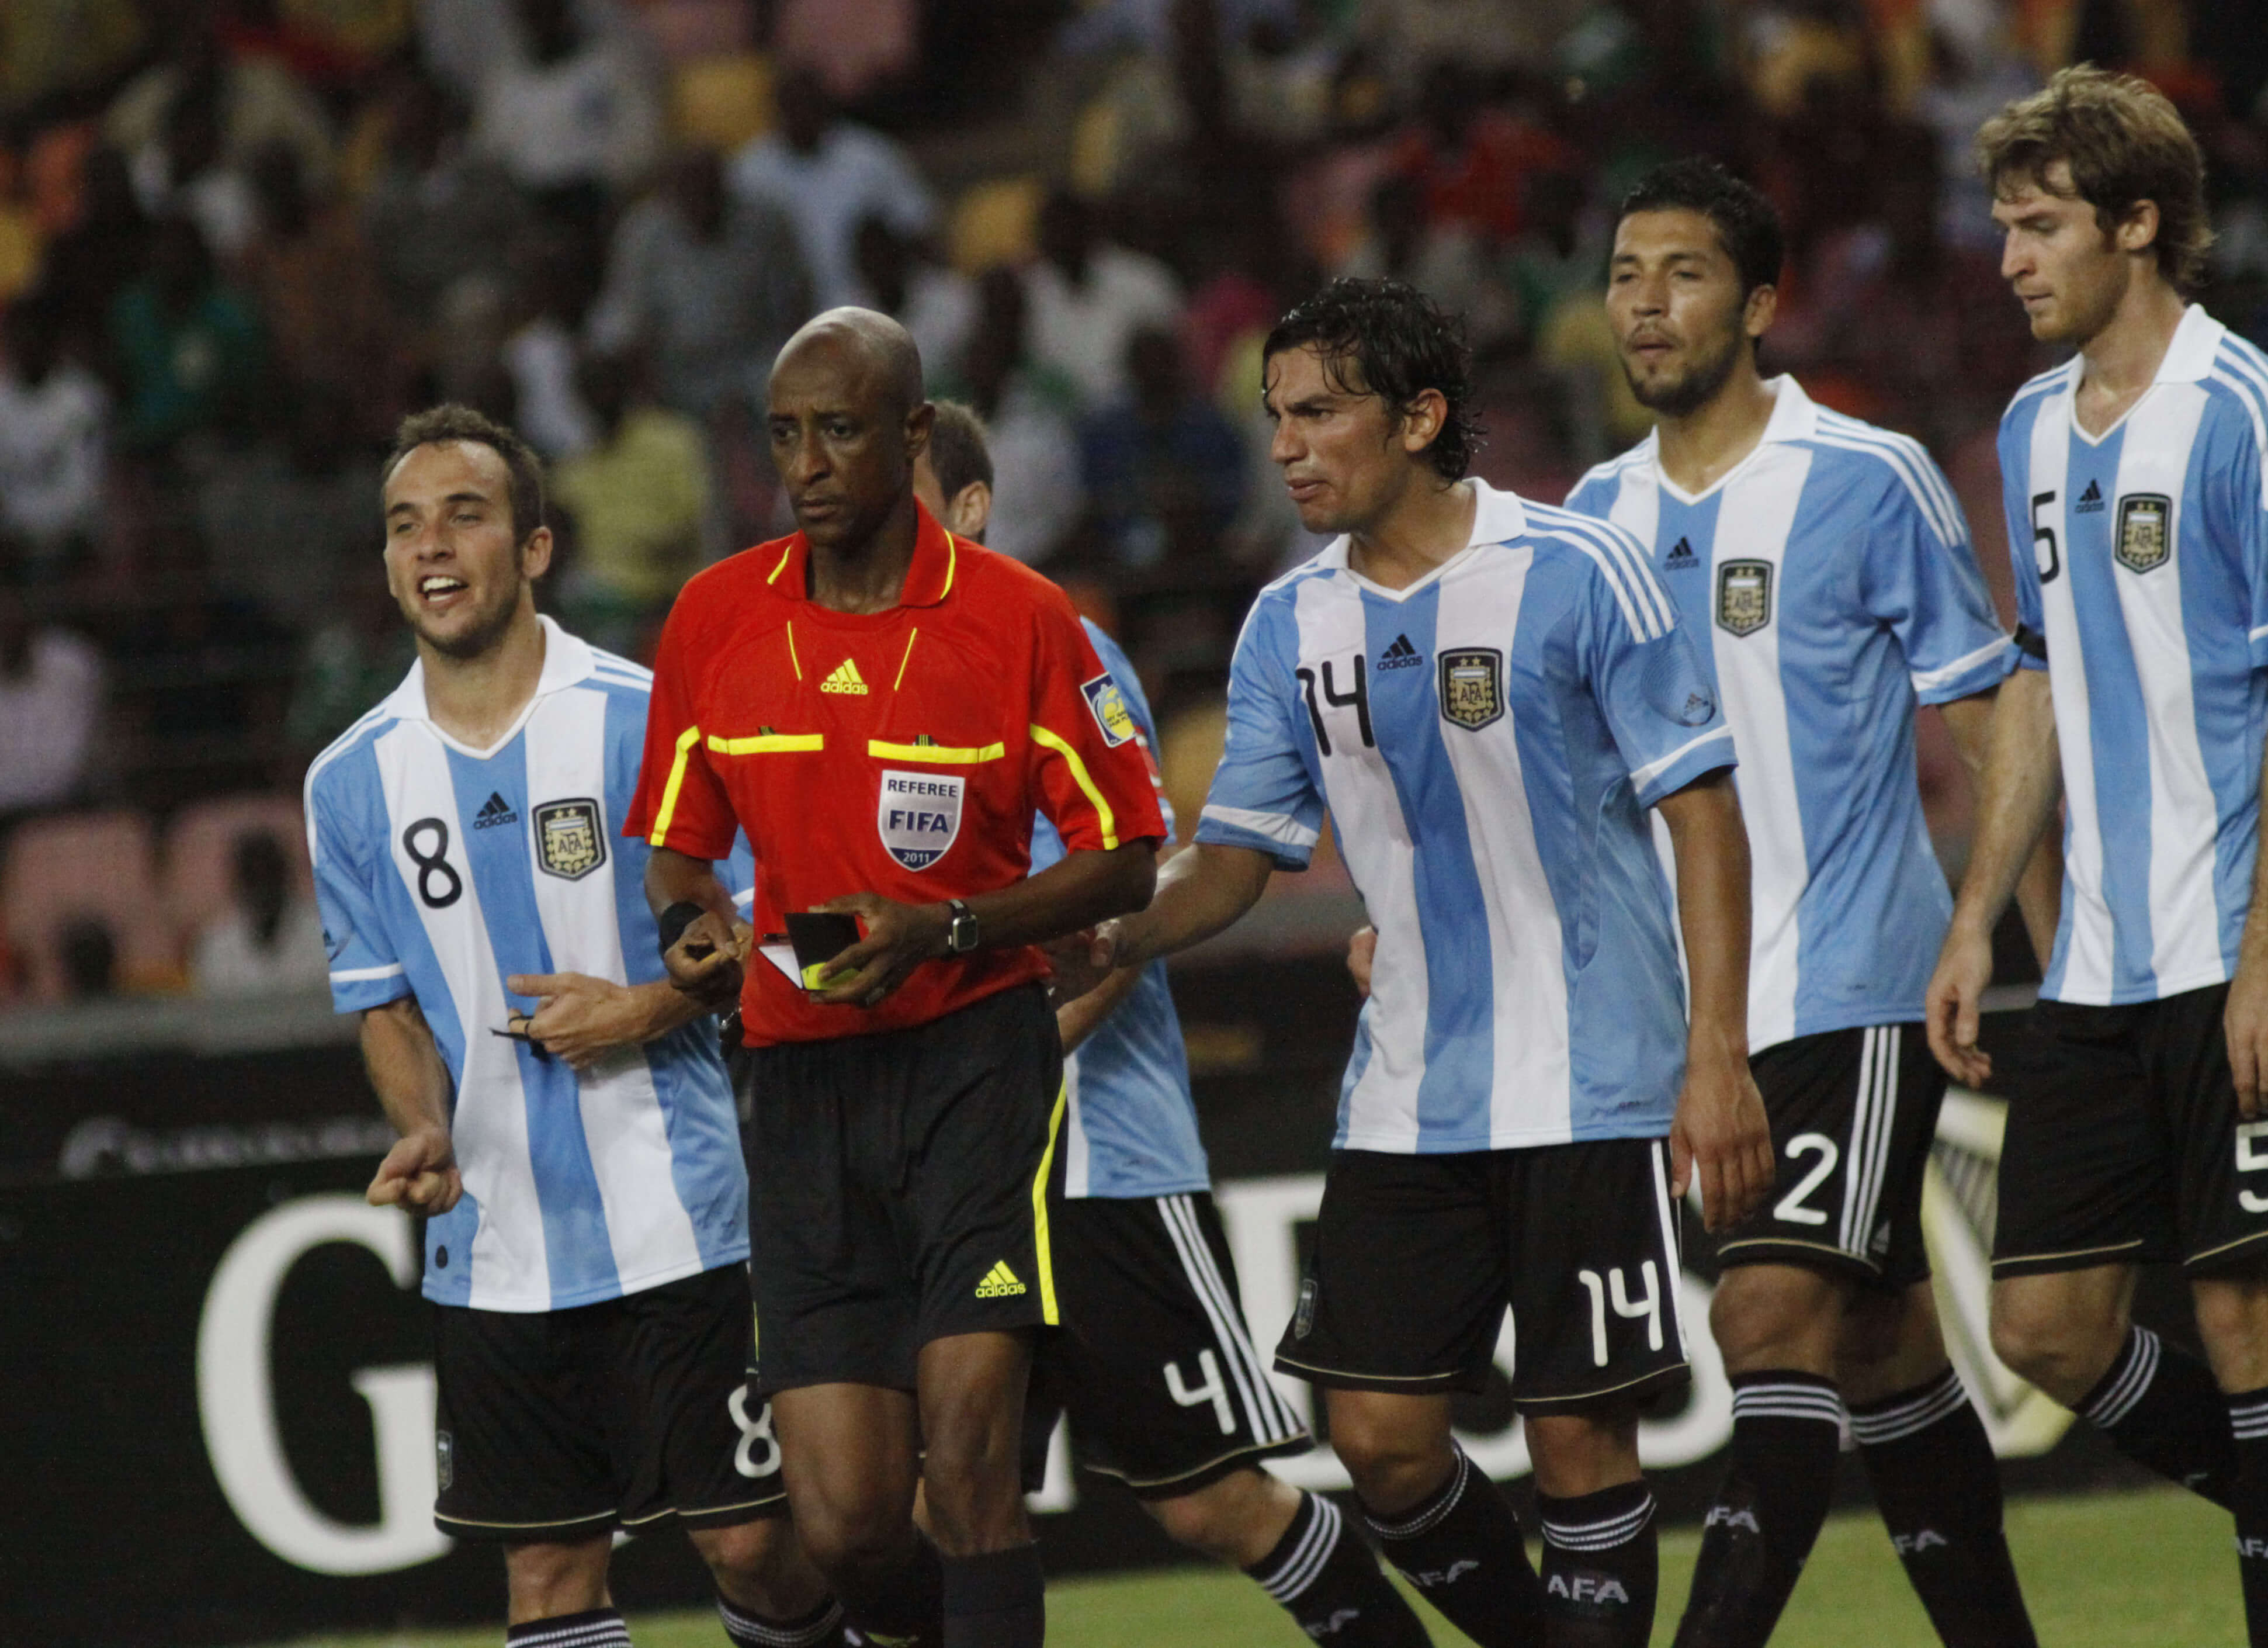 Referee Ibrahim Chaibou, second from left, is surrounded by Argentine soccer players after he awarded a penalty against them during an international friendly soccer match with Nigeria on June 1, 2011.